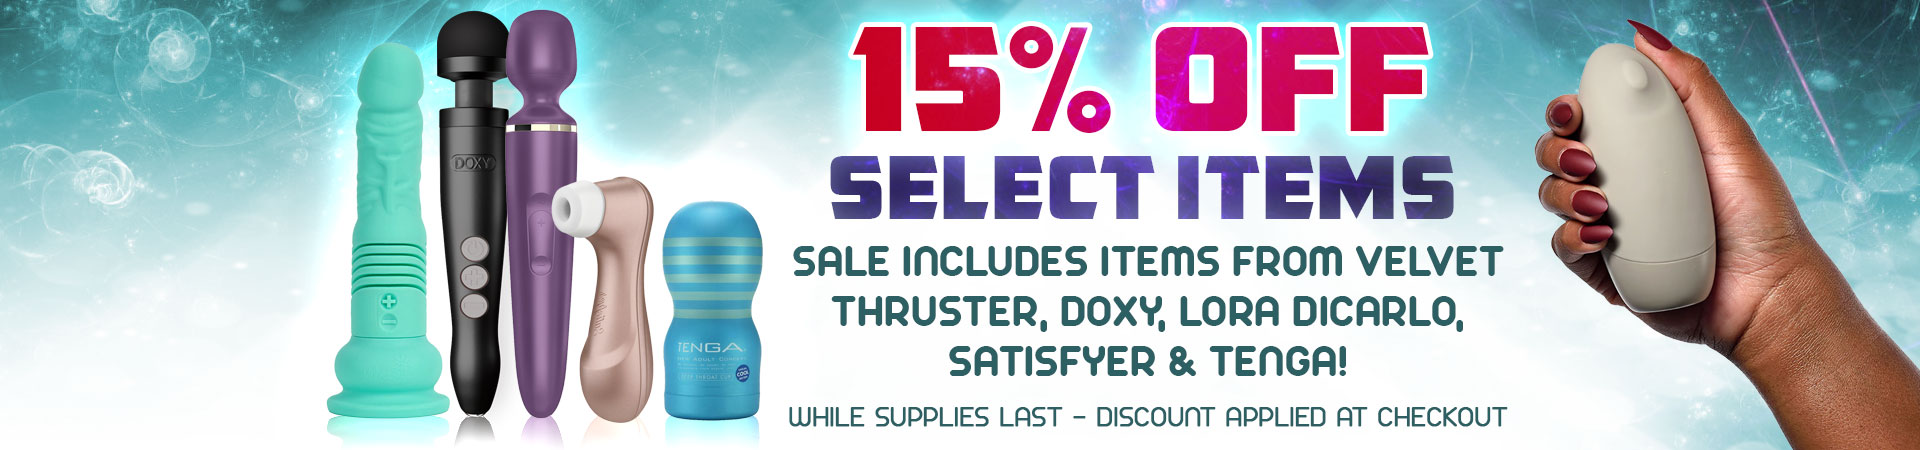 15% Off Select Items - Discount Applied At Checkout - While Supplies Last!